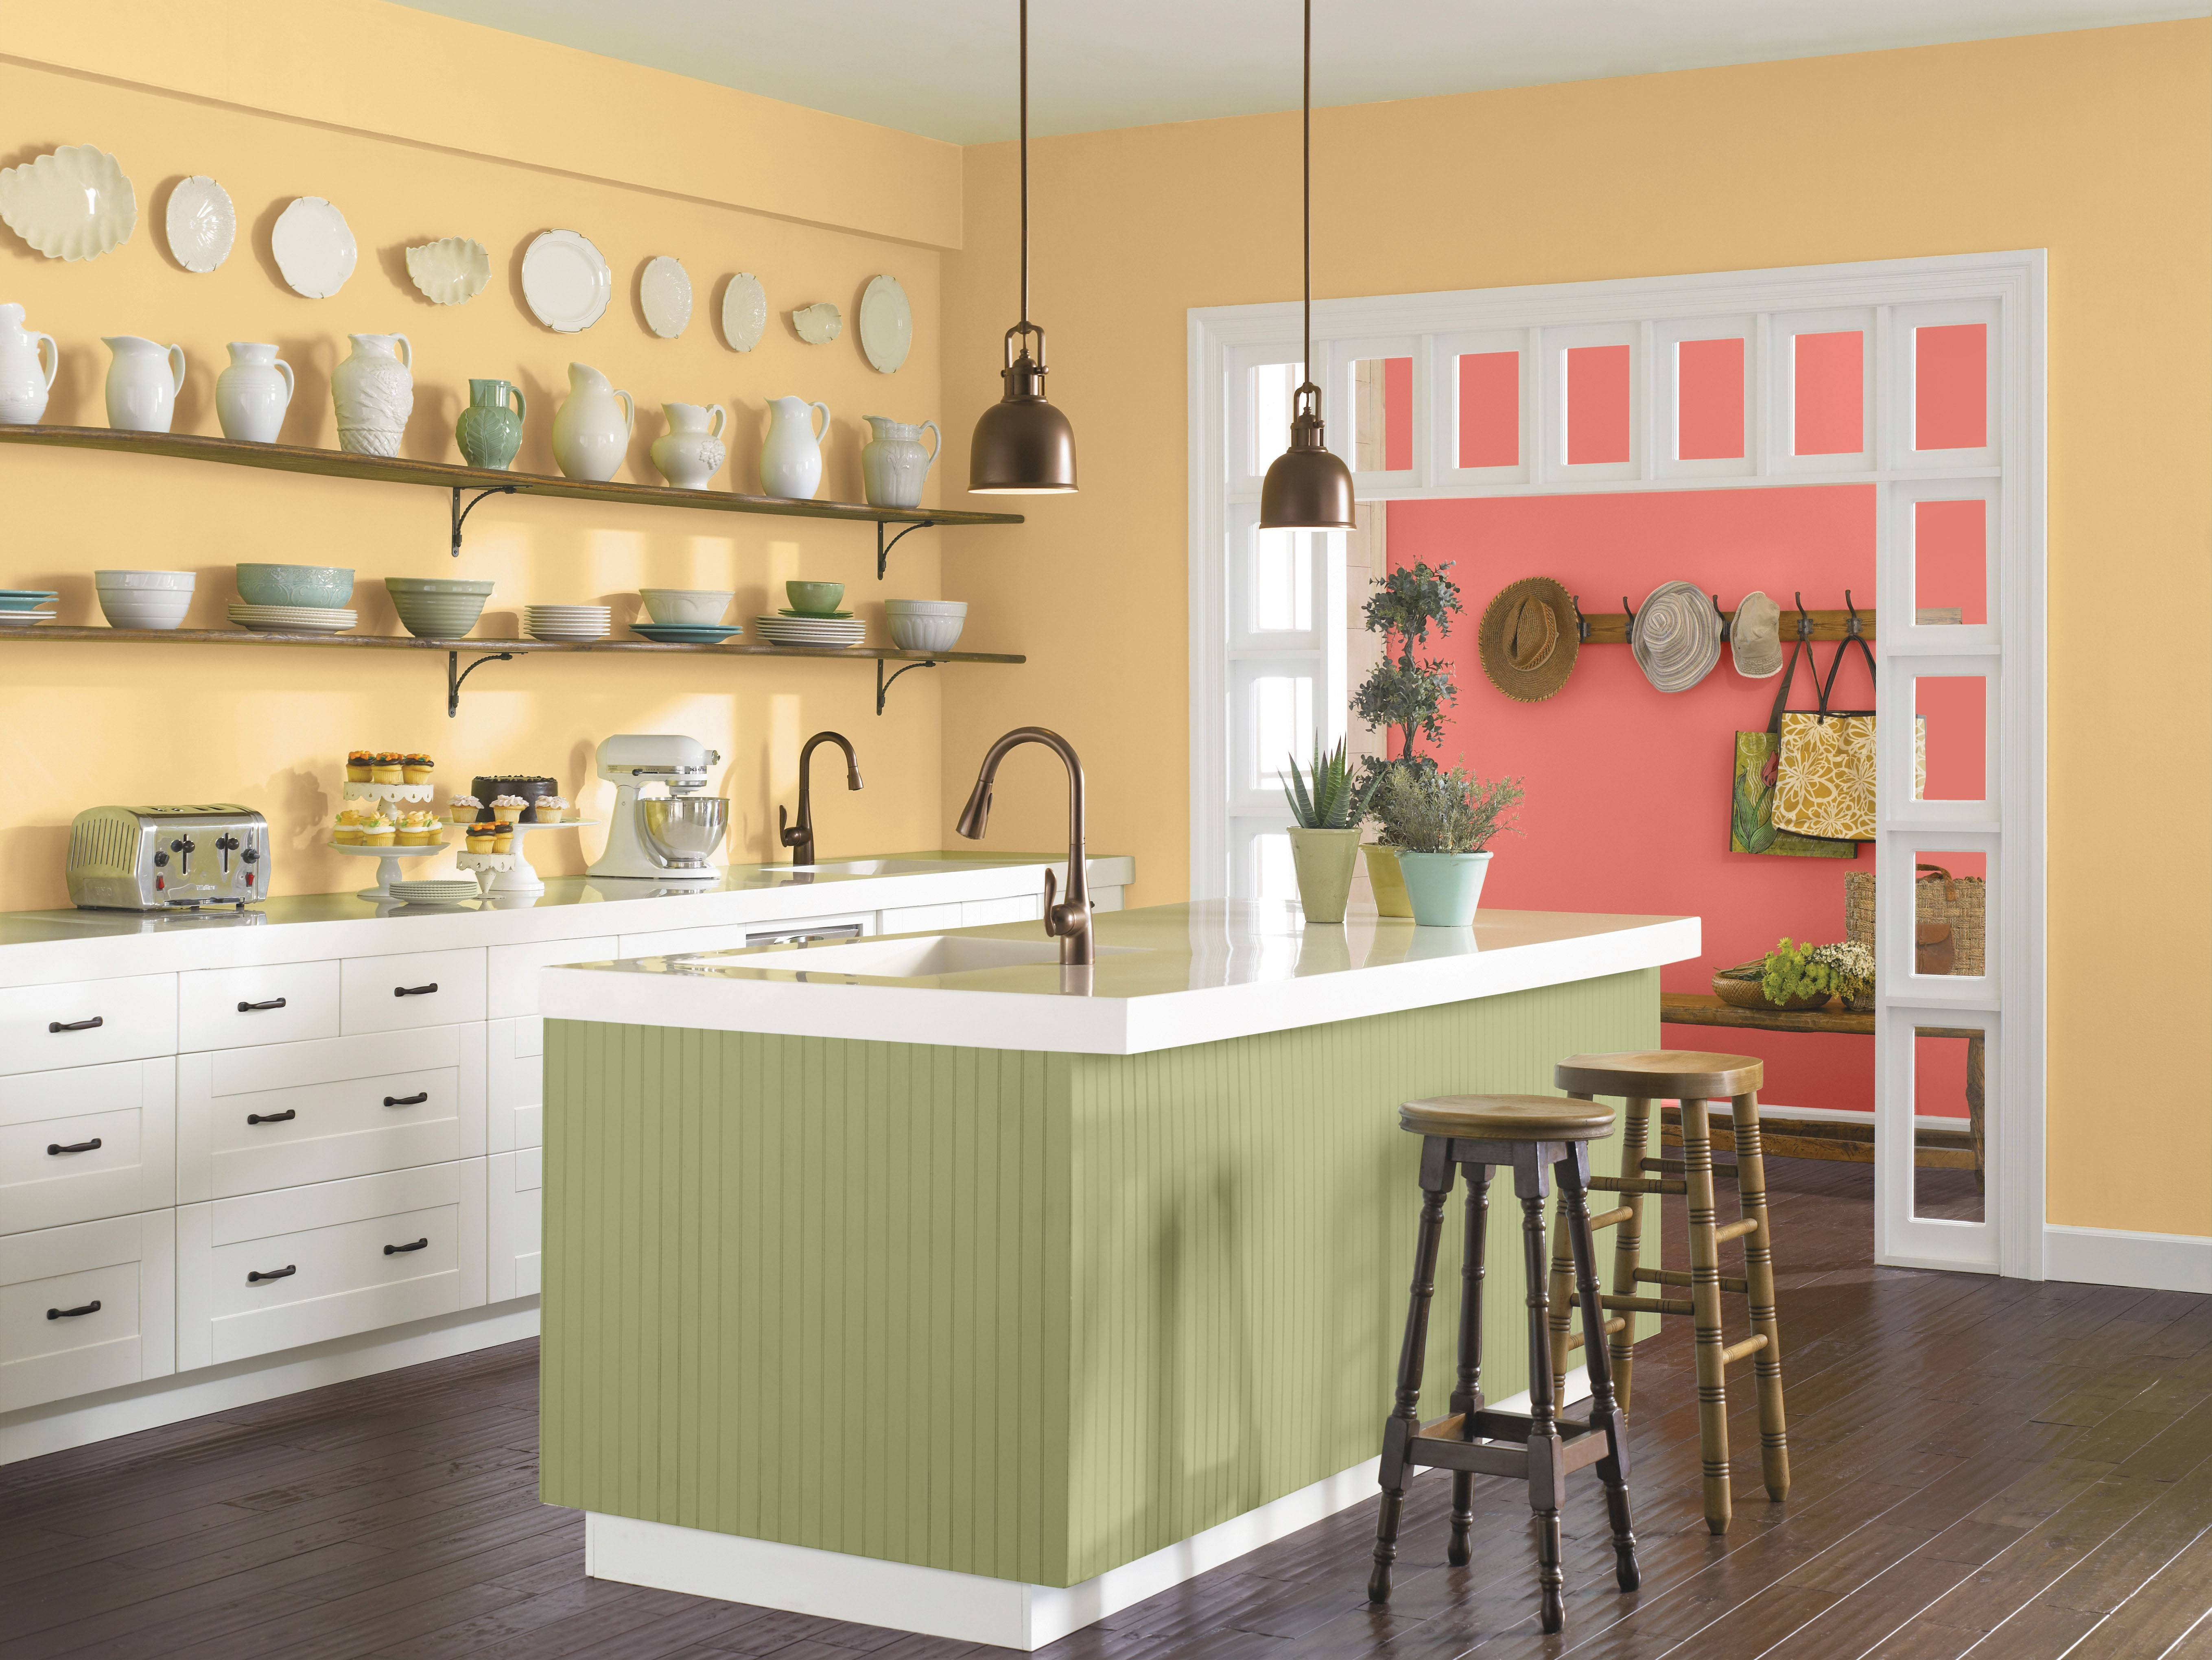 Sherwin-Williams chose Coral Reef, a mix of pink and orange, as its Color of the Year. Here this color is used next to a yellow kitchen with olive cabinetry.